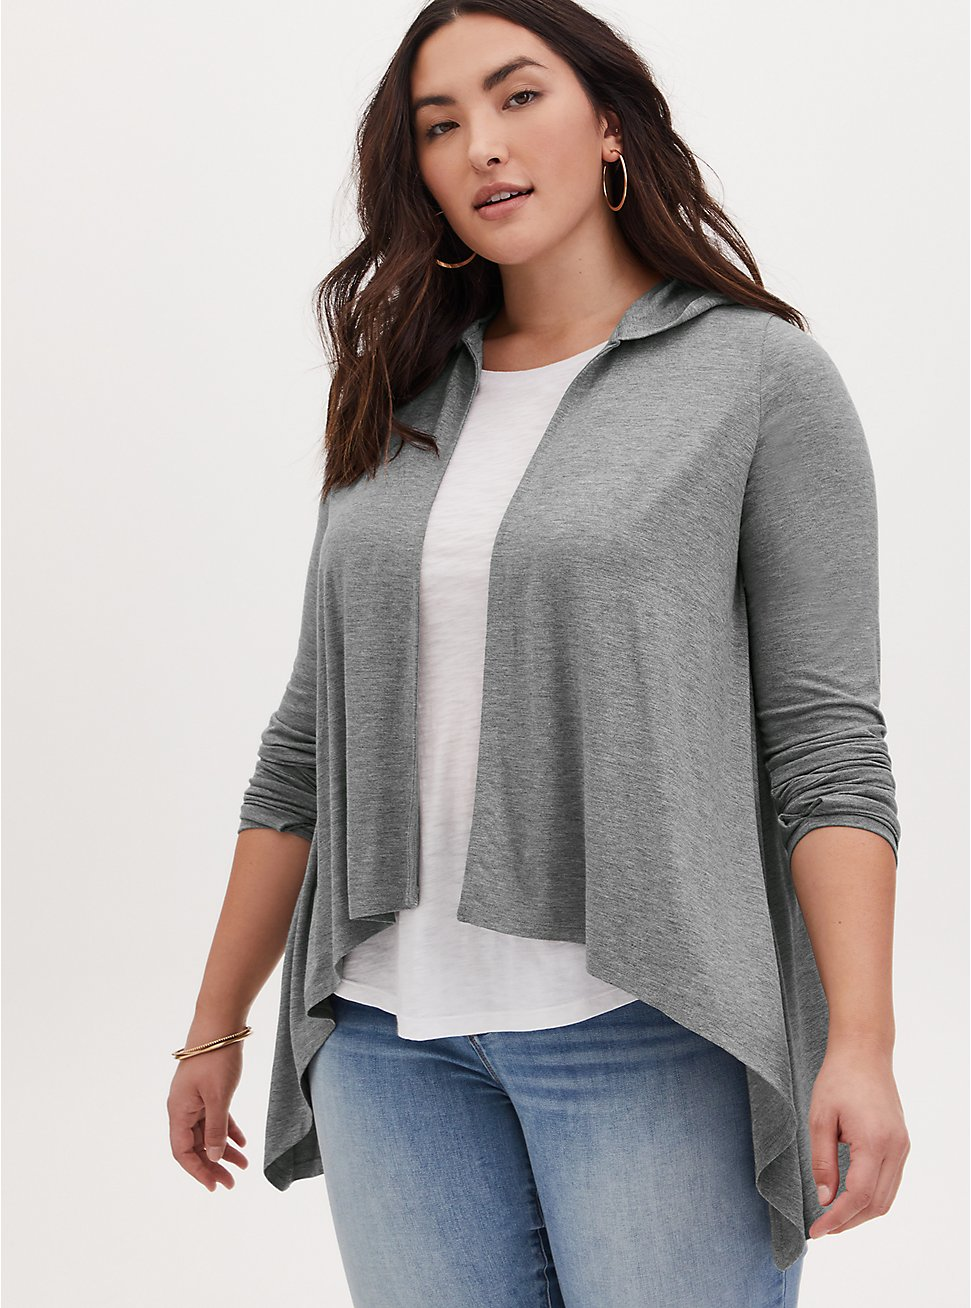 Super Soft Heather Grey Drape Front Hi-Lo Hooded Cardigan, HEATHER GREY, hi-res